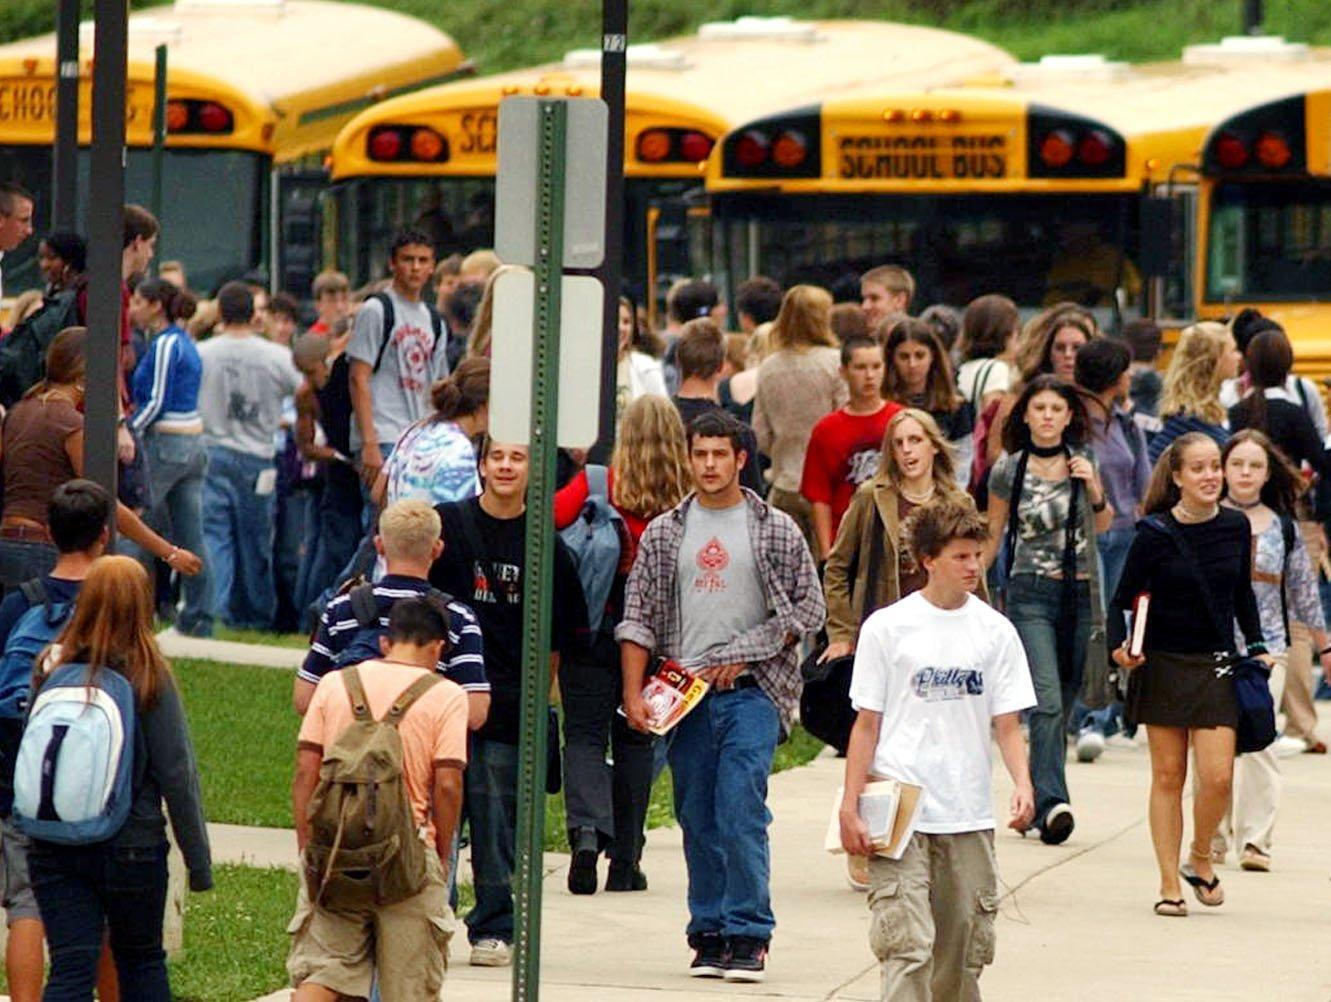 the benefits of starting school later Research links later school start times to benefits for teens  not all schools have seen measurable benefits from starting later st louis park high school, which was included in the u's.